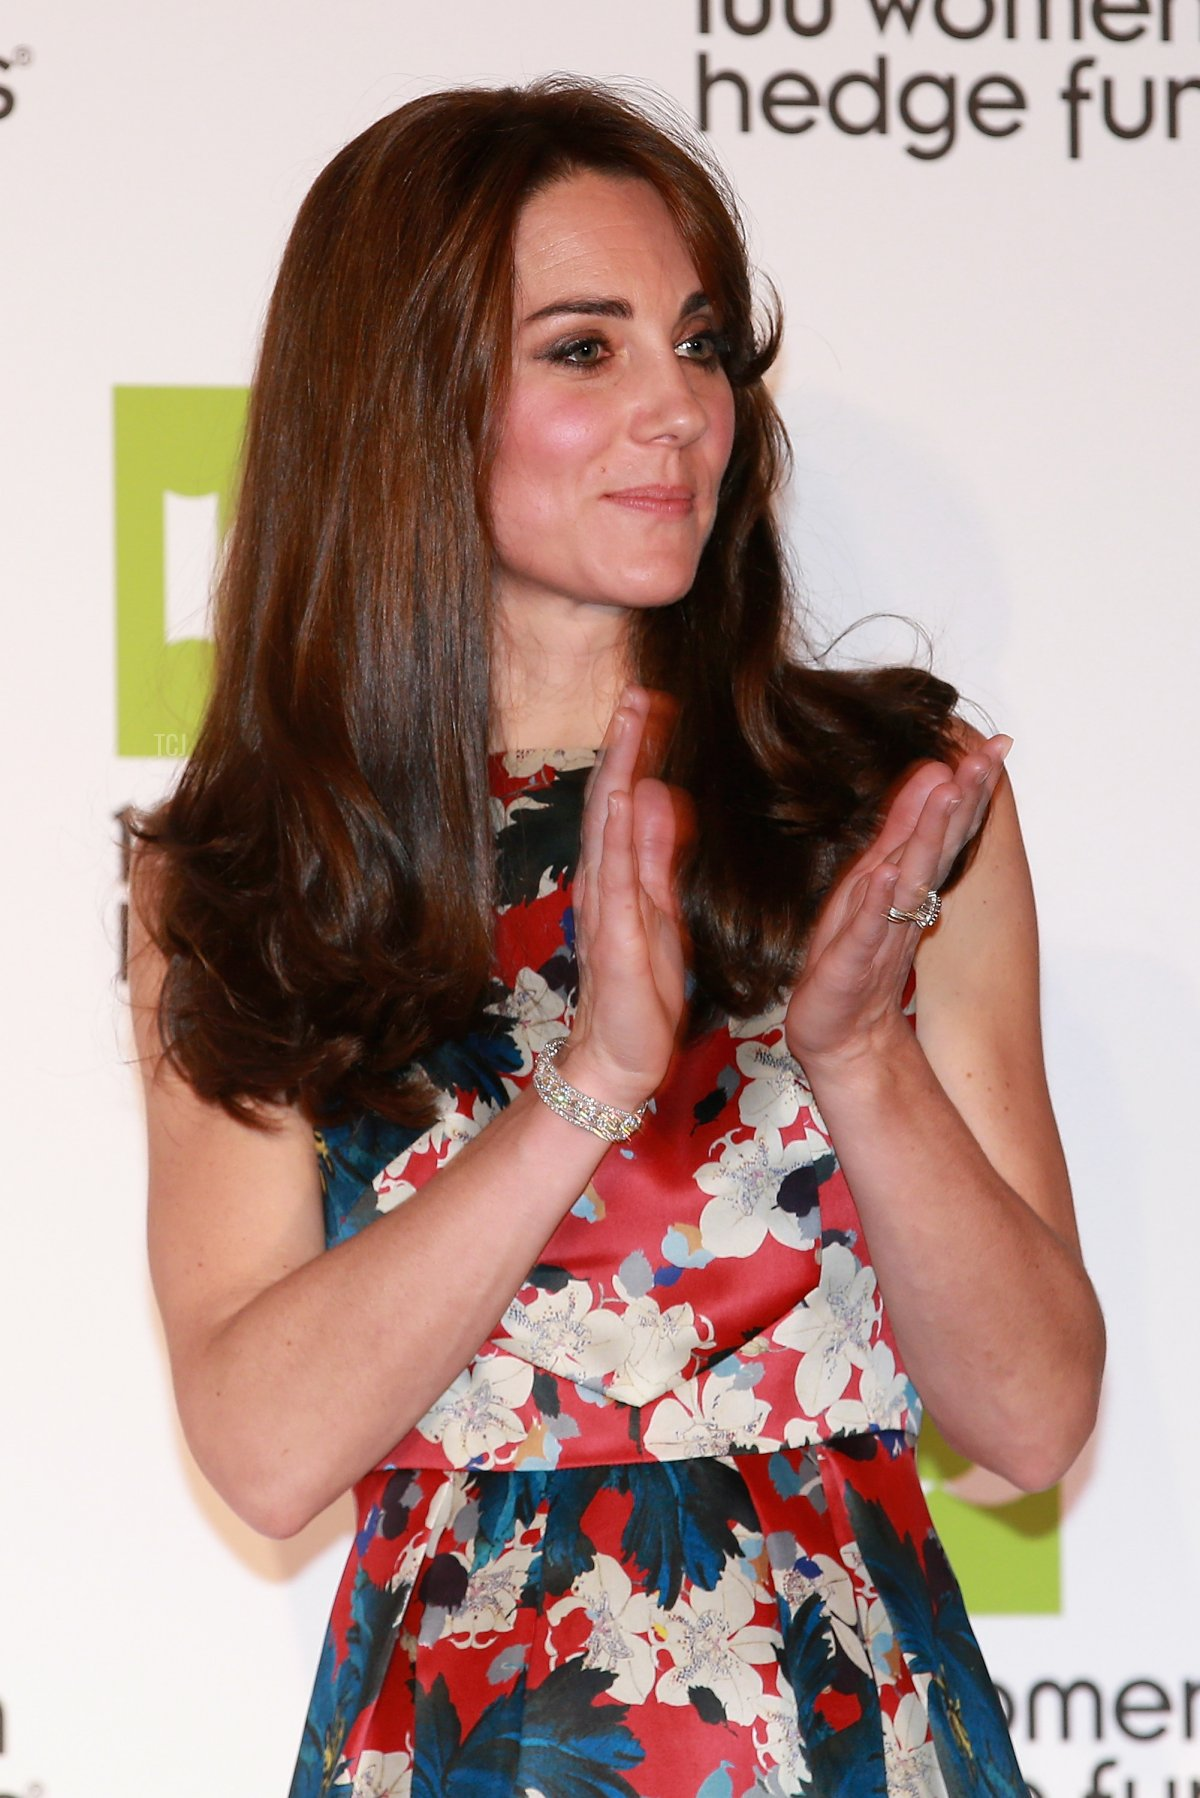 Catherine, Duchess of Cambridge claps Elizabeth Corley CEO of Allianz Global Investors on to stage at the 100 Women In Hedge Funds Gala Dinner In Aid Of The Art Room at the Victoria and Albert Museum on October 27, 2015